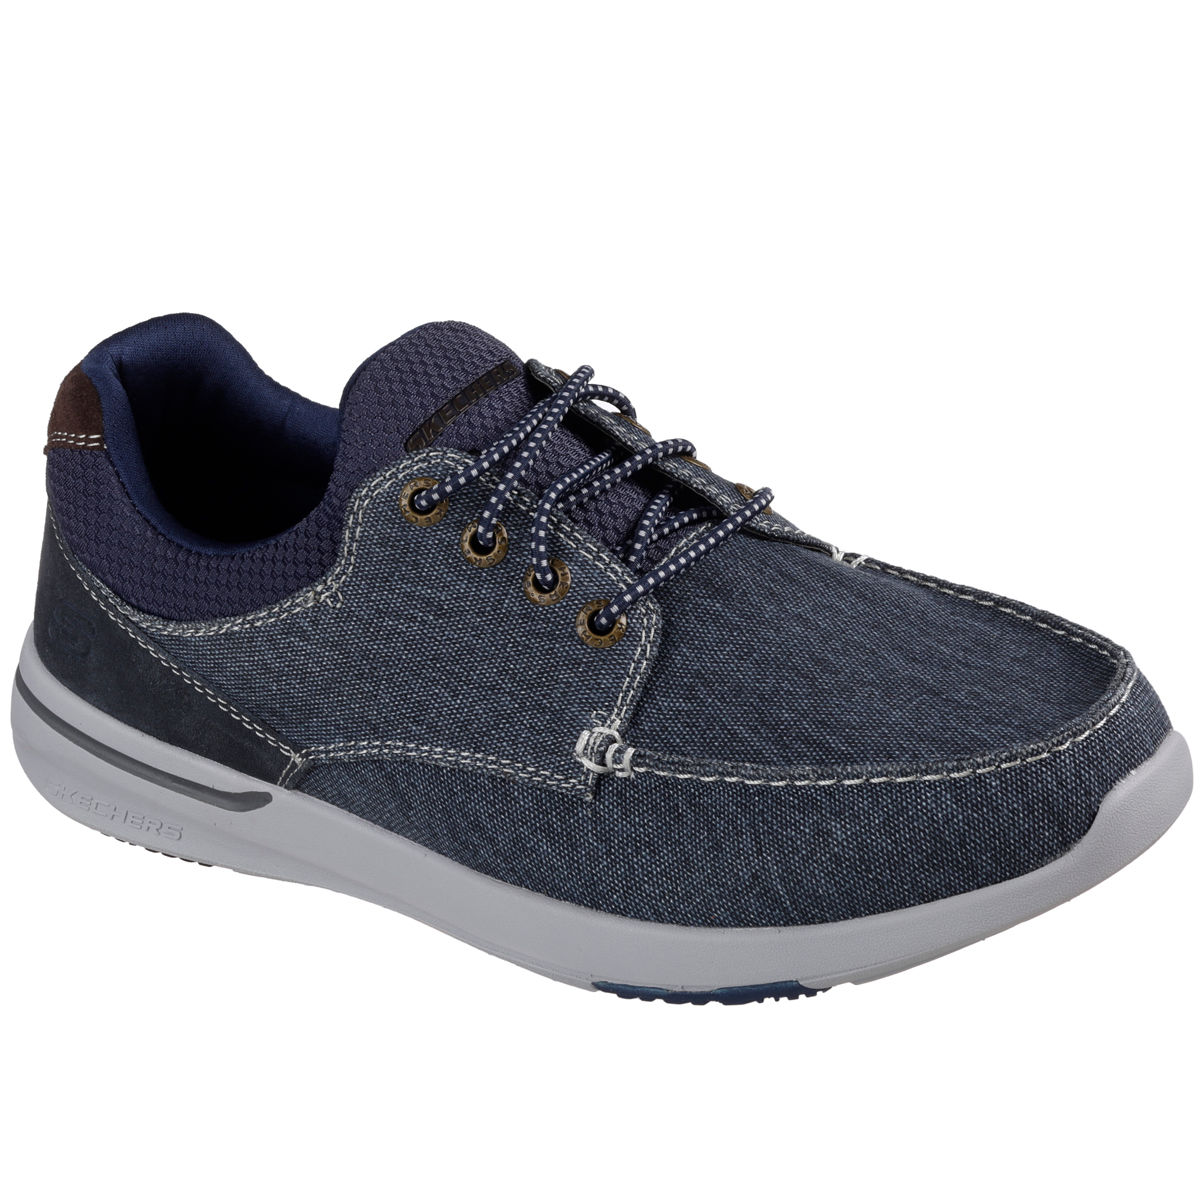 Skechers Relaxed Fit Elent Mosen Mens Boat Shoe